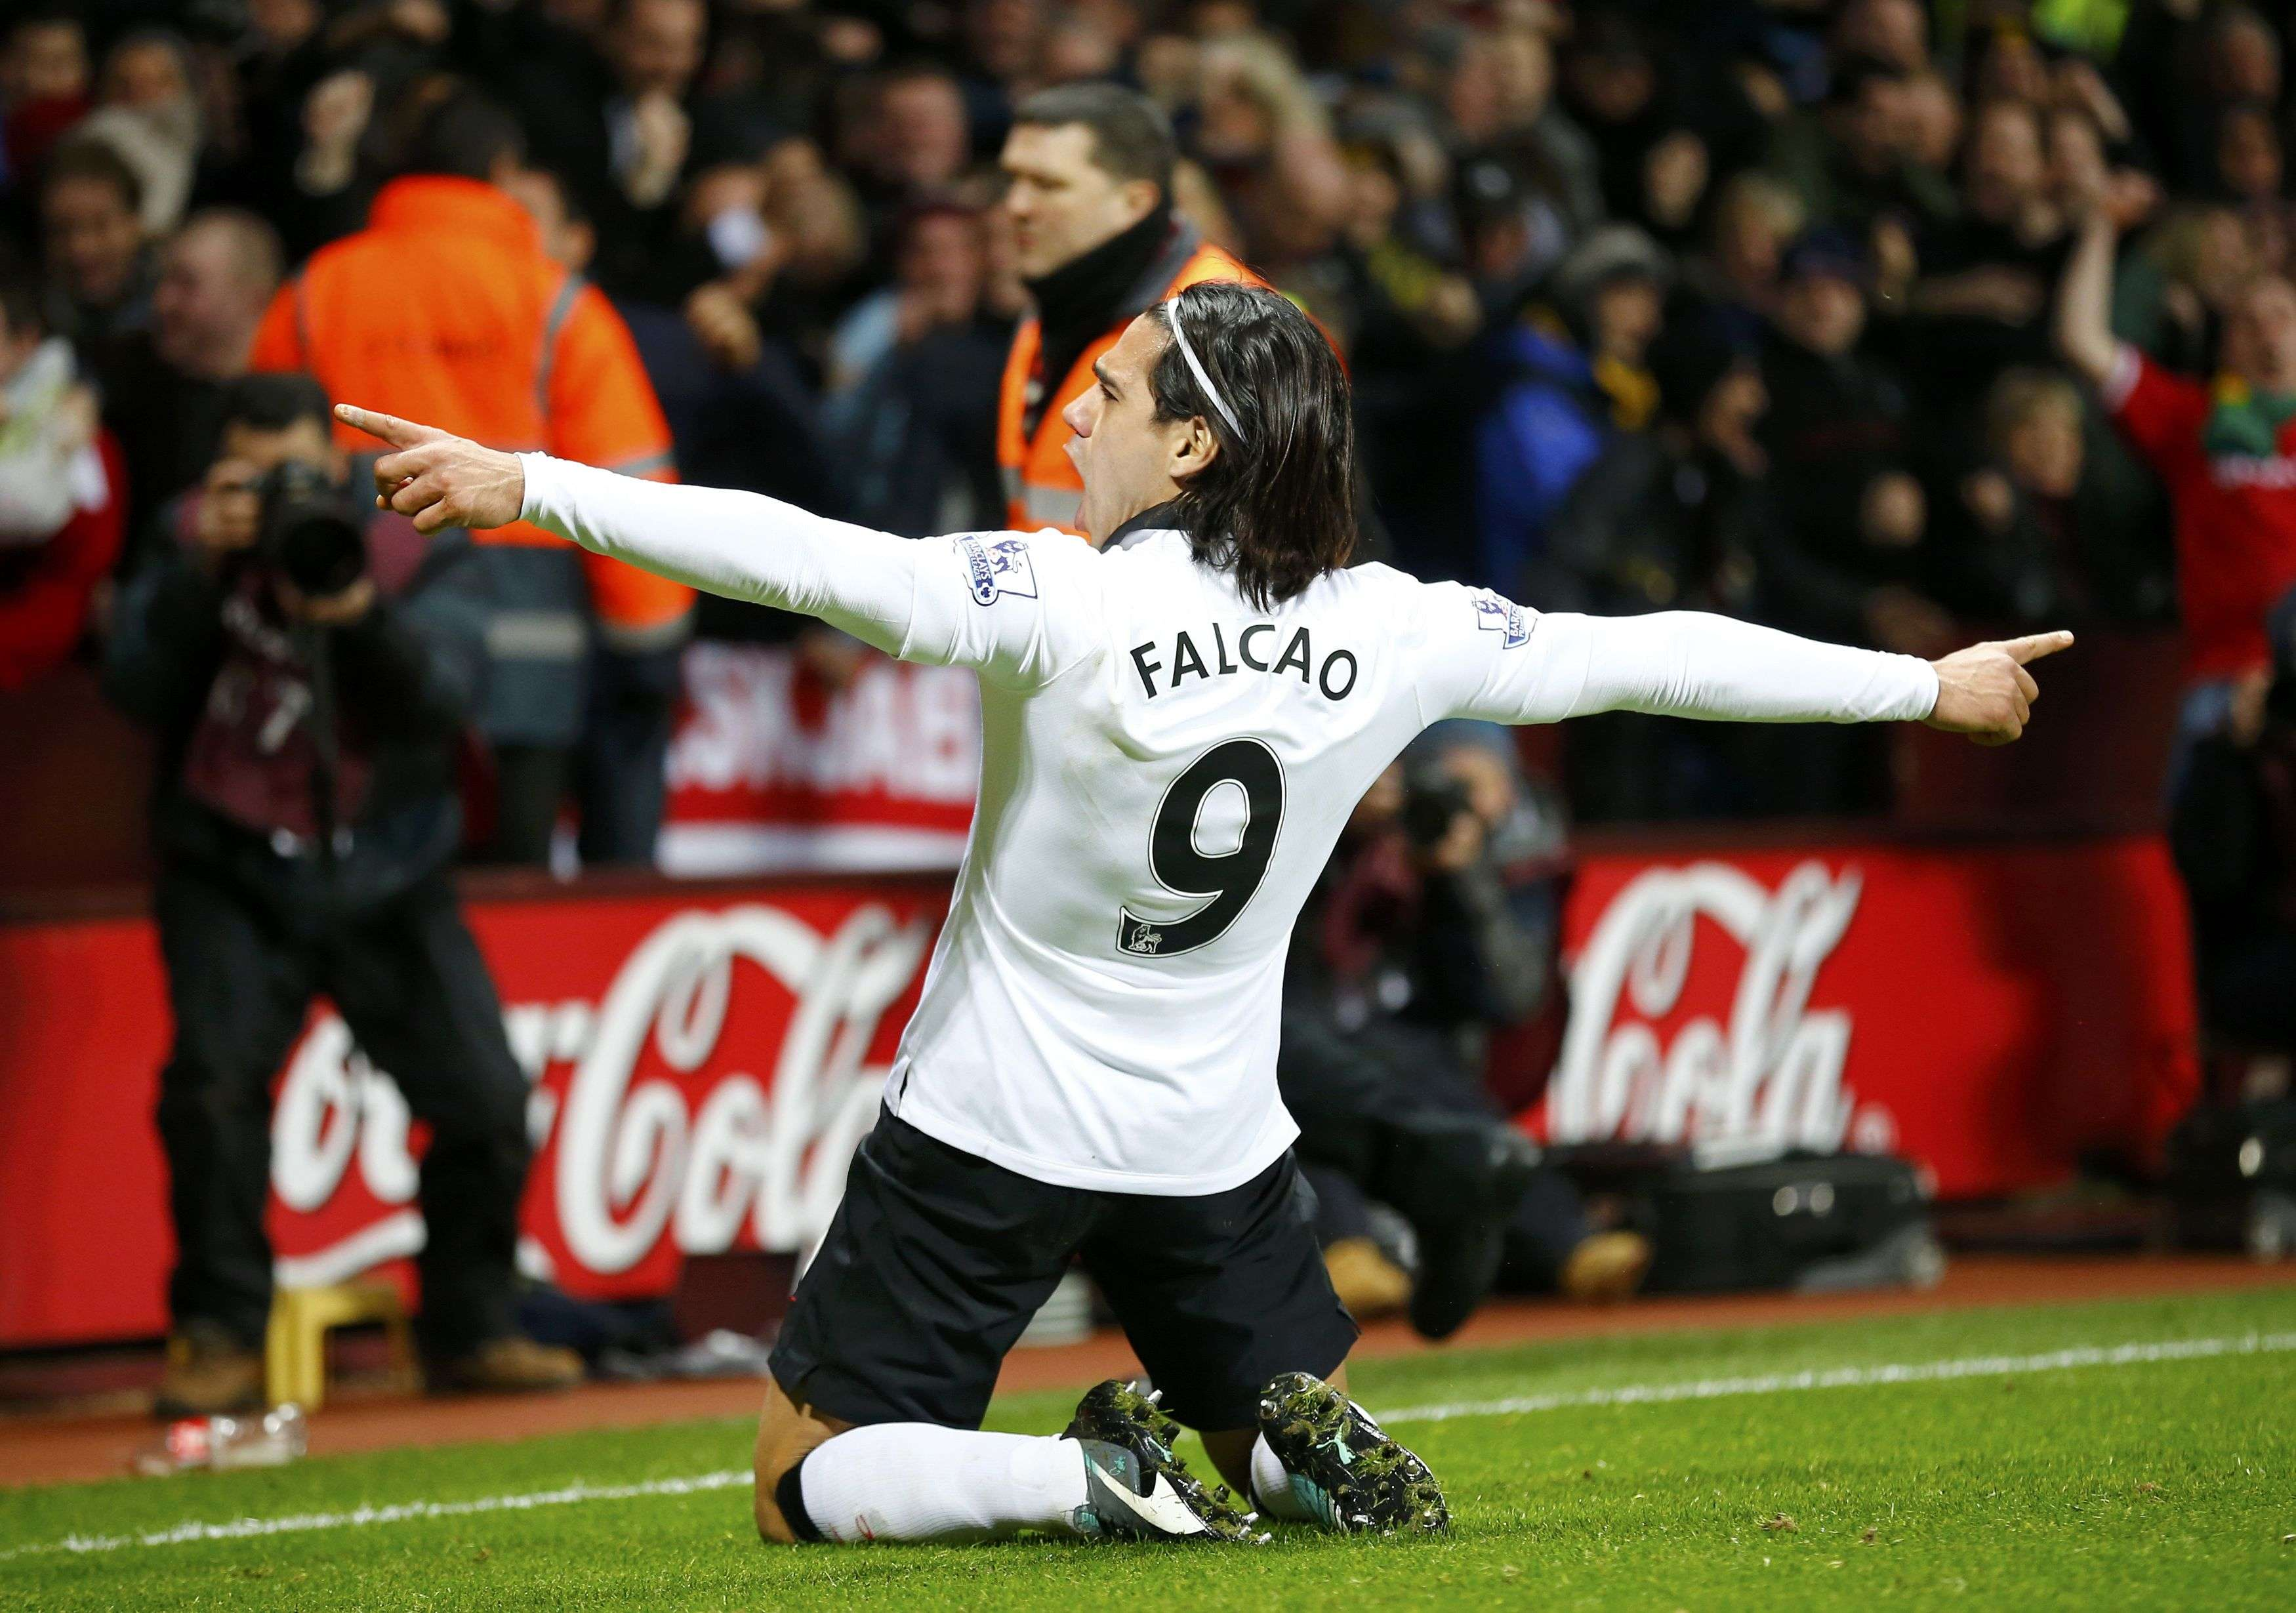 Manchester United's Radamel Falcao celebrates after scoring a goal during their English Premier League soccer match against Aston Villa at Villa Park in Birmingham, central England December 20, 2014. REUTERS/Darren Staples (BRITAIN - Tags: SOCCER SPORT) FOR EDITORIAL USE ONLY. NOT FOR SALE FOR MARKETING OR ADVERTISING CAMPAIGNS. EDITORIAL USE ONLY. NO USE WITH UNAUTHORIZED AUDIO, VIDEO, DATA, FIXTURE LISTS, CLUB/LEAGUE LOGOS OR 'LIVE' SERVICES. ONLINE IN-MATCH USE LIMITED TO 45 IMAGES, NO VIDEO EMULATION. NO USE IN BETTING, GAMES OR SINGLE CLUB/LEAGUE/PLAYER PUBLICATIONS. Foto: DARREN STAPLES/REUTERS